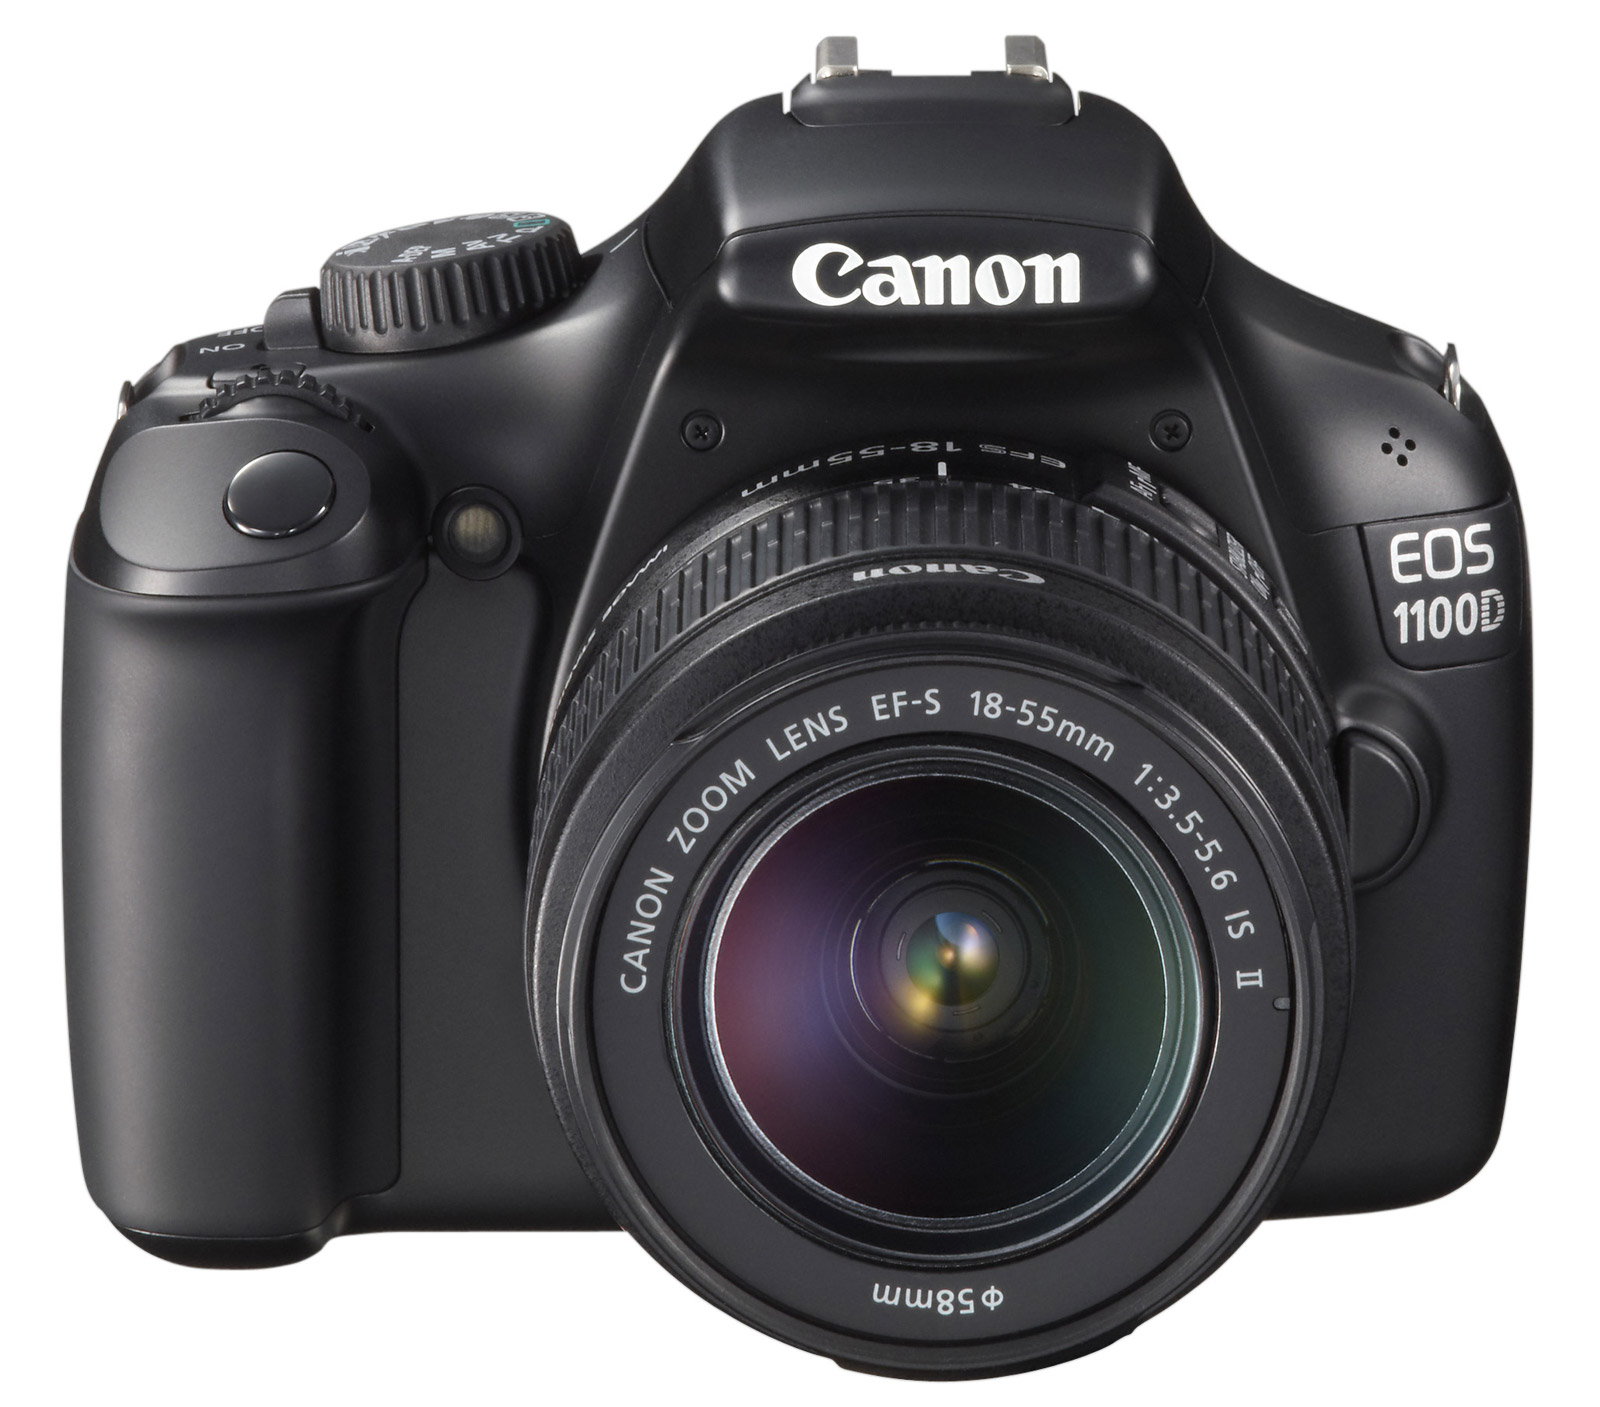 DigiCamReview.com | Canon EOS 1100D DSLR Canon